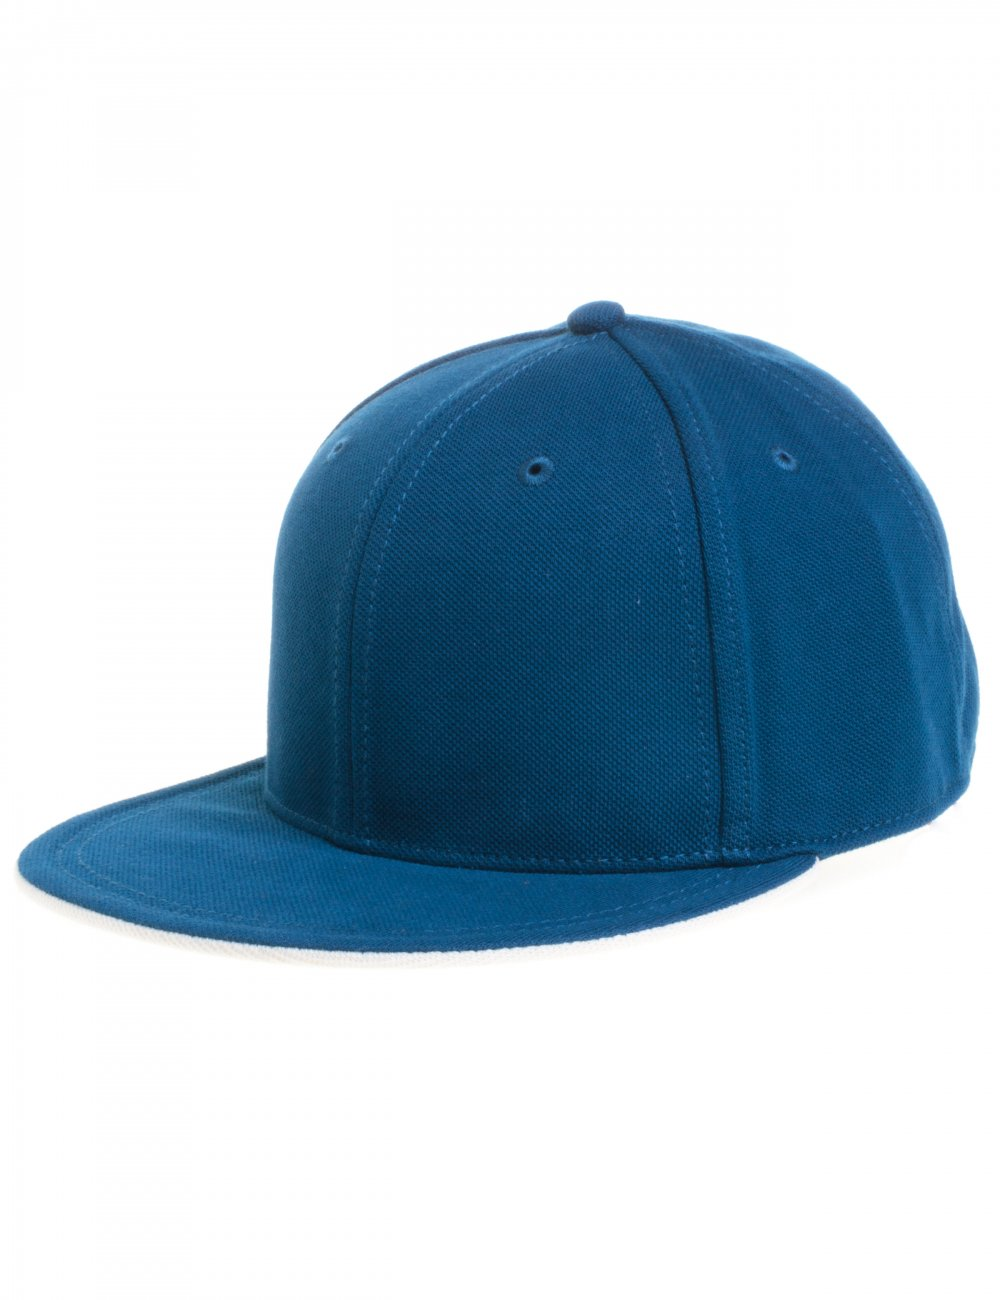 4c812df34a0 Lacoste Live Cap - Rabane Narcisse - Hat Shop from iConsume UK